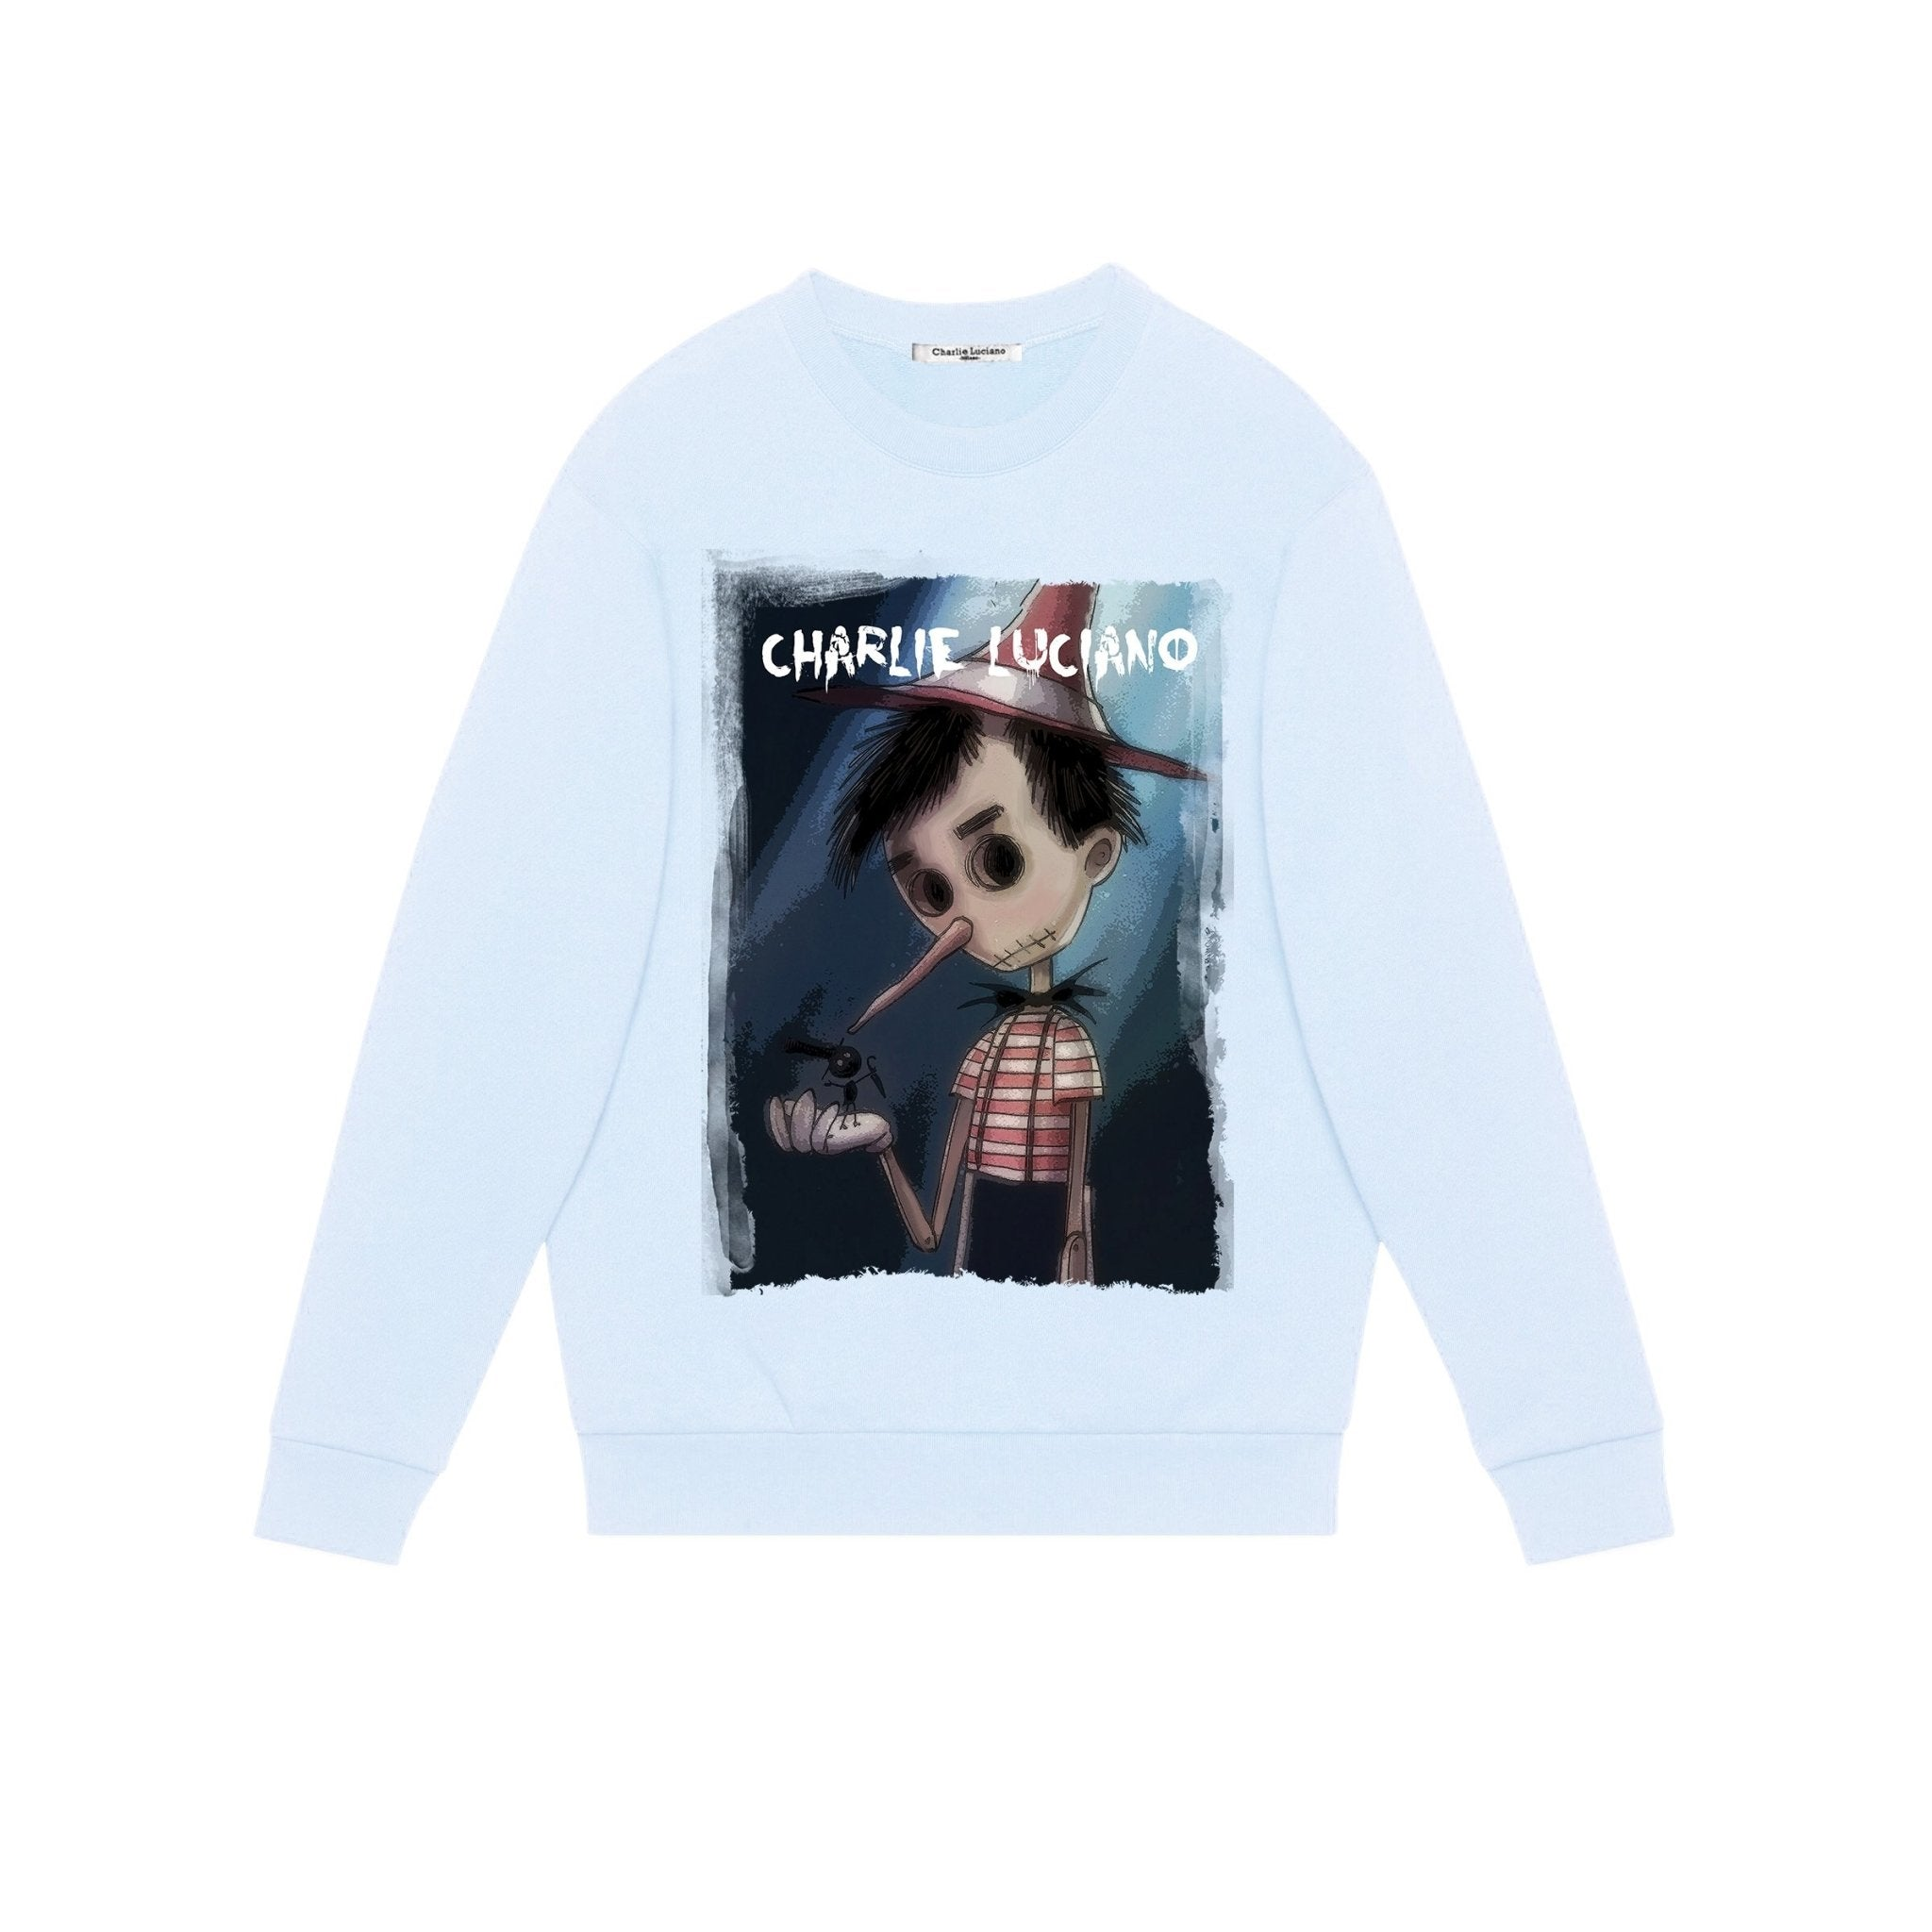 CHARLIE LUCIANO 'Pinocchio' Sweatershirt | MADA IN CHINA